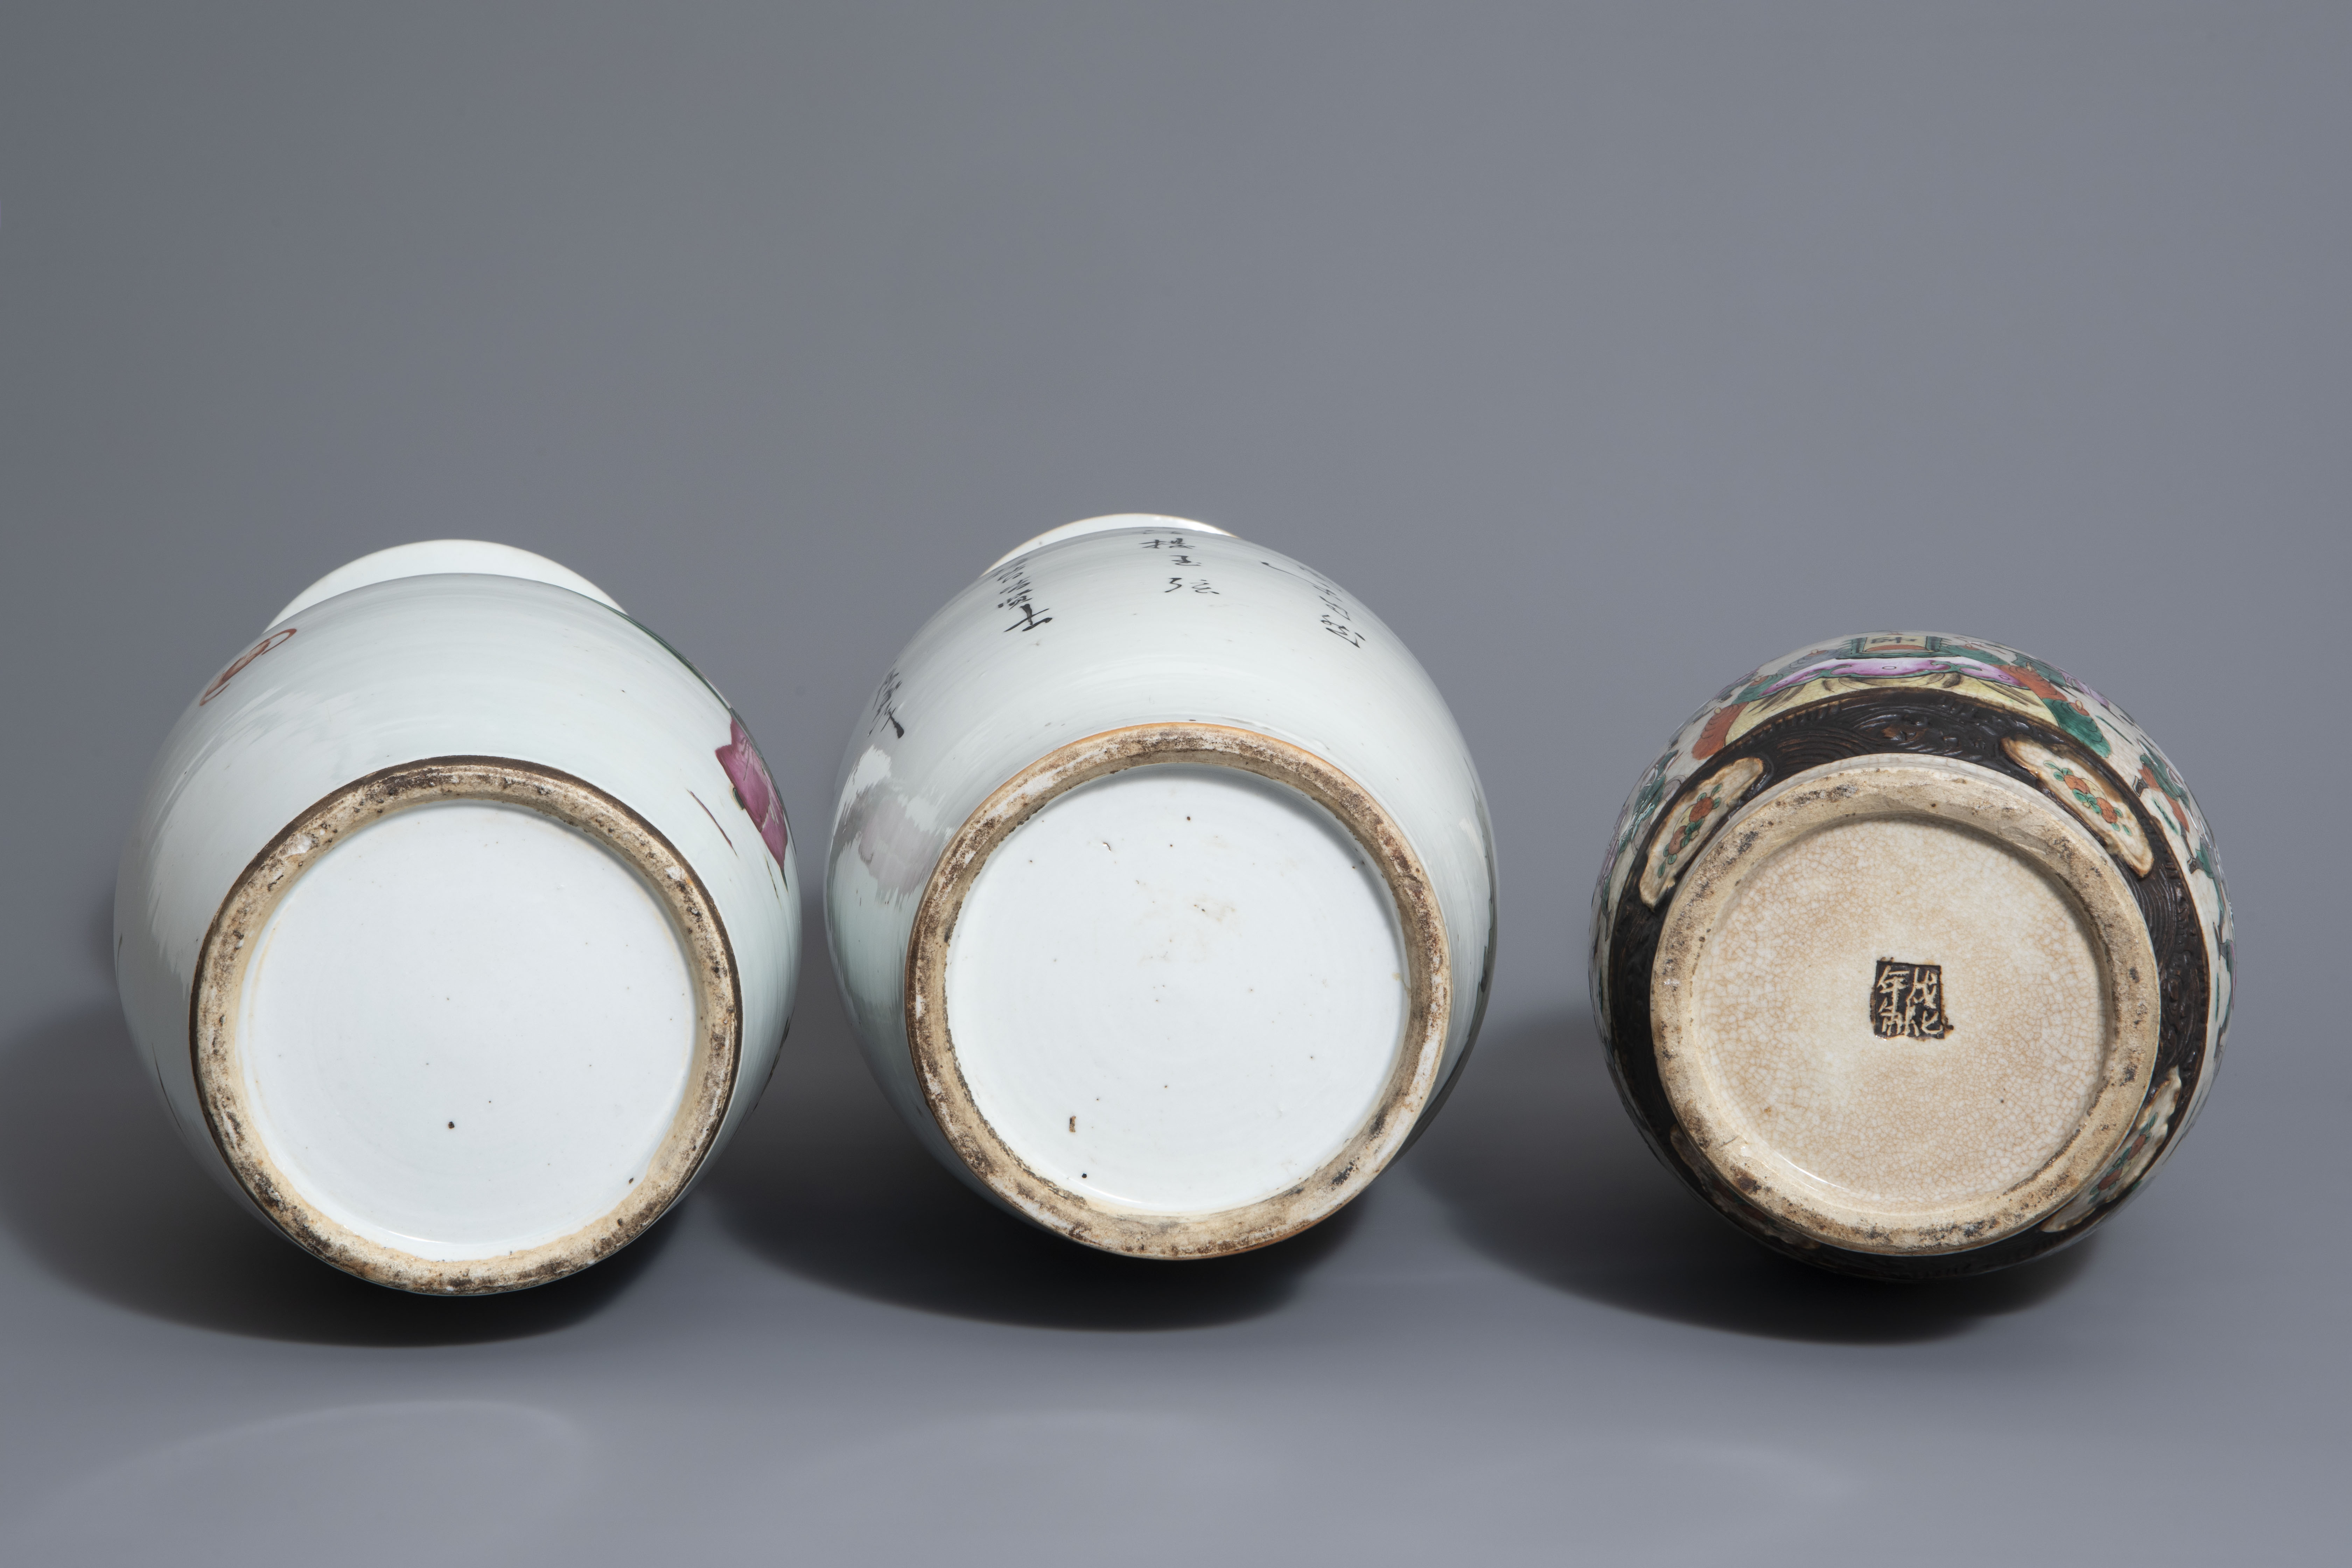 Three Chinese famille rose and Nanking crackle glazed vases, 19th C. - Image 7 of 7